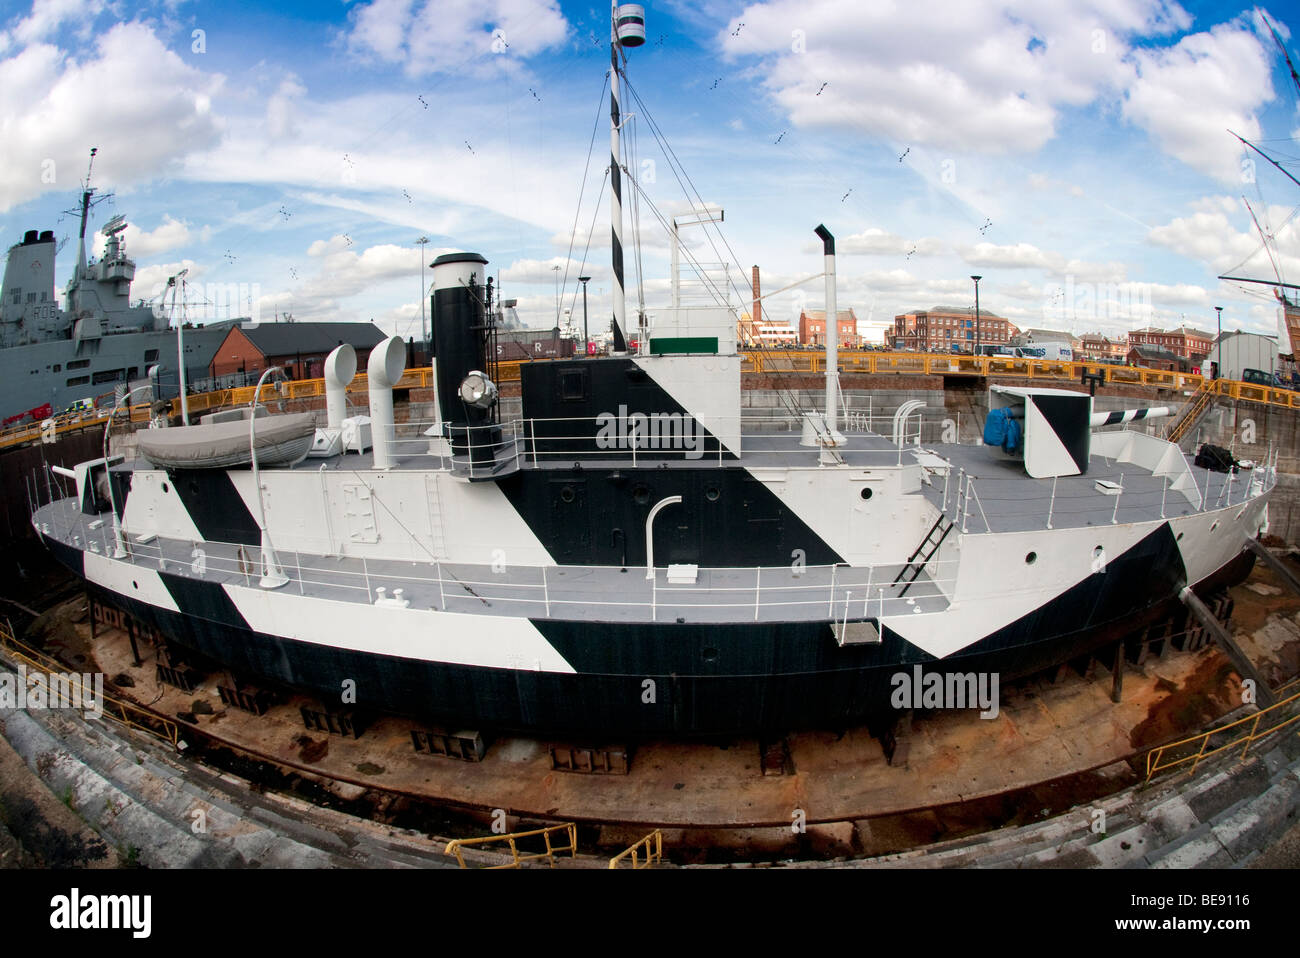 HMS Monitor Historic Dockyard - Stock Image